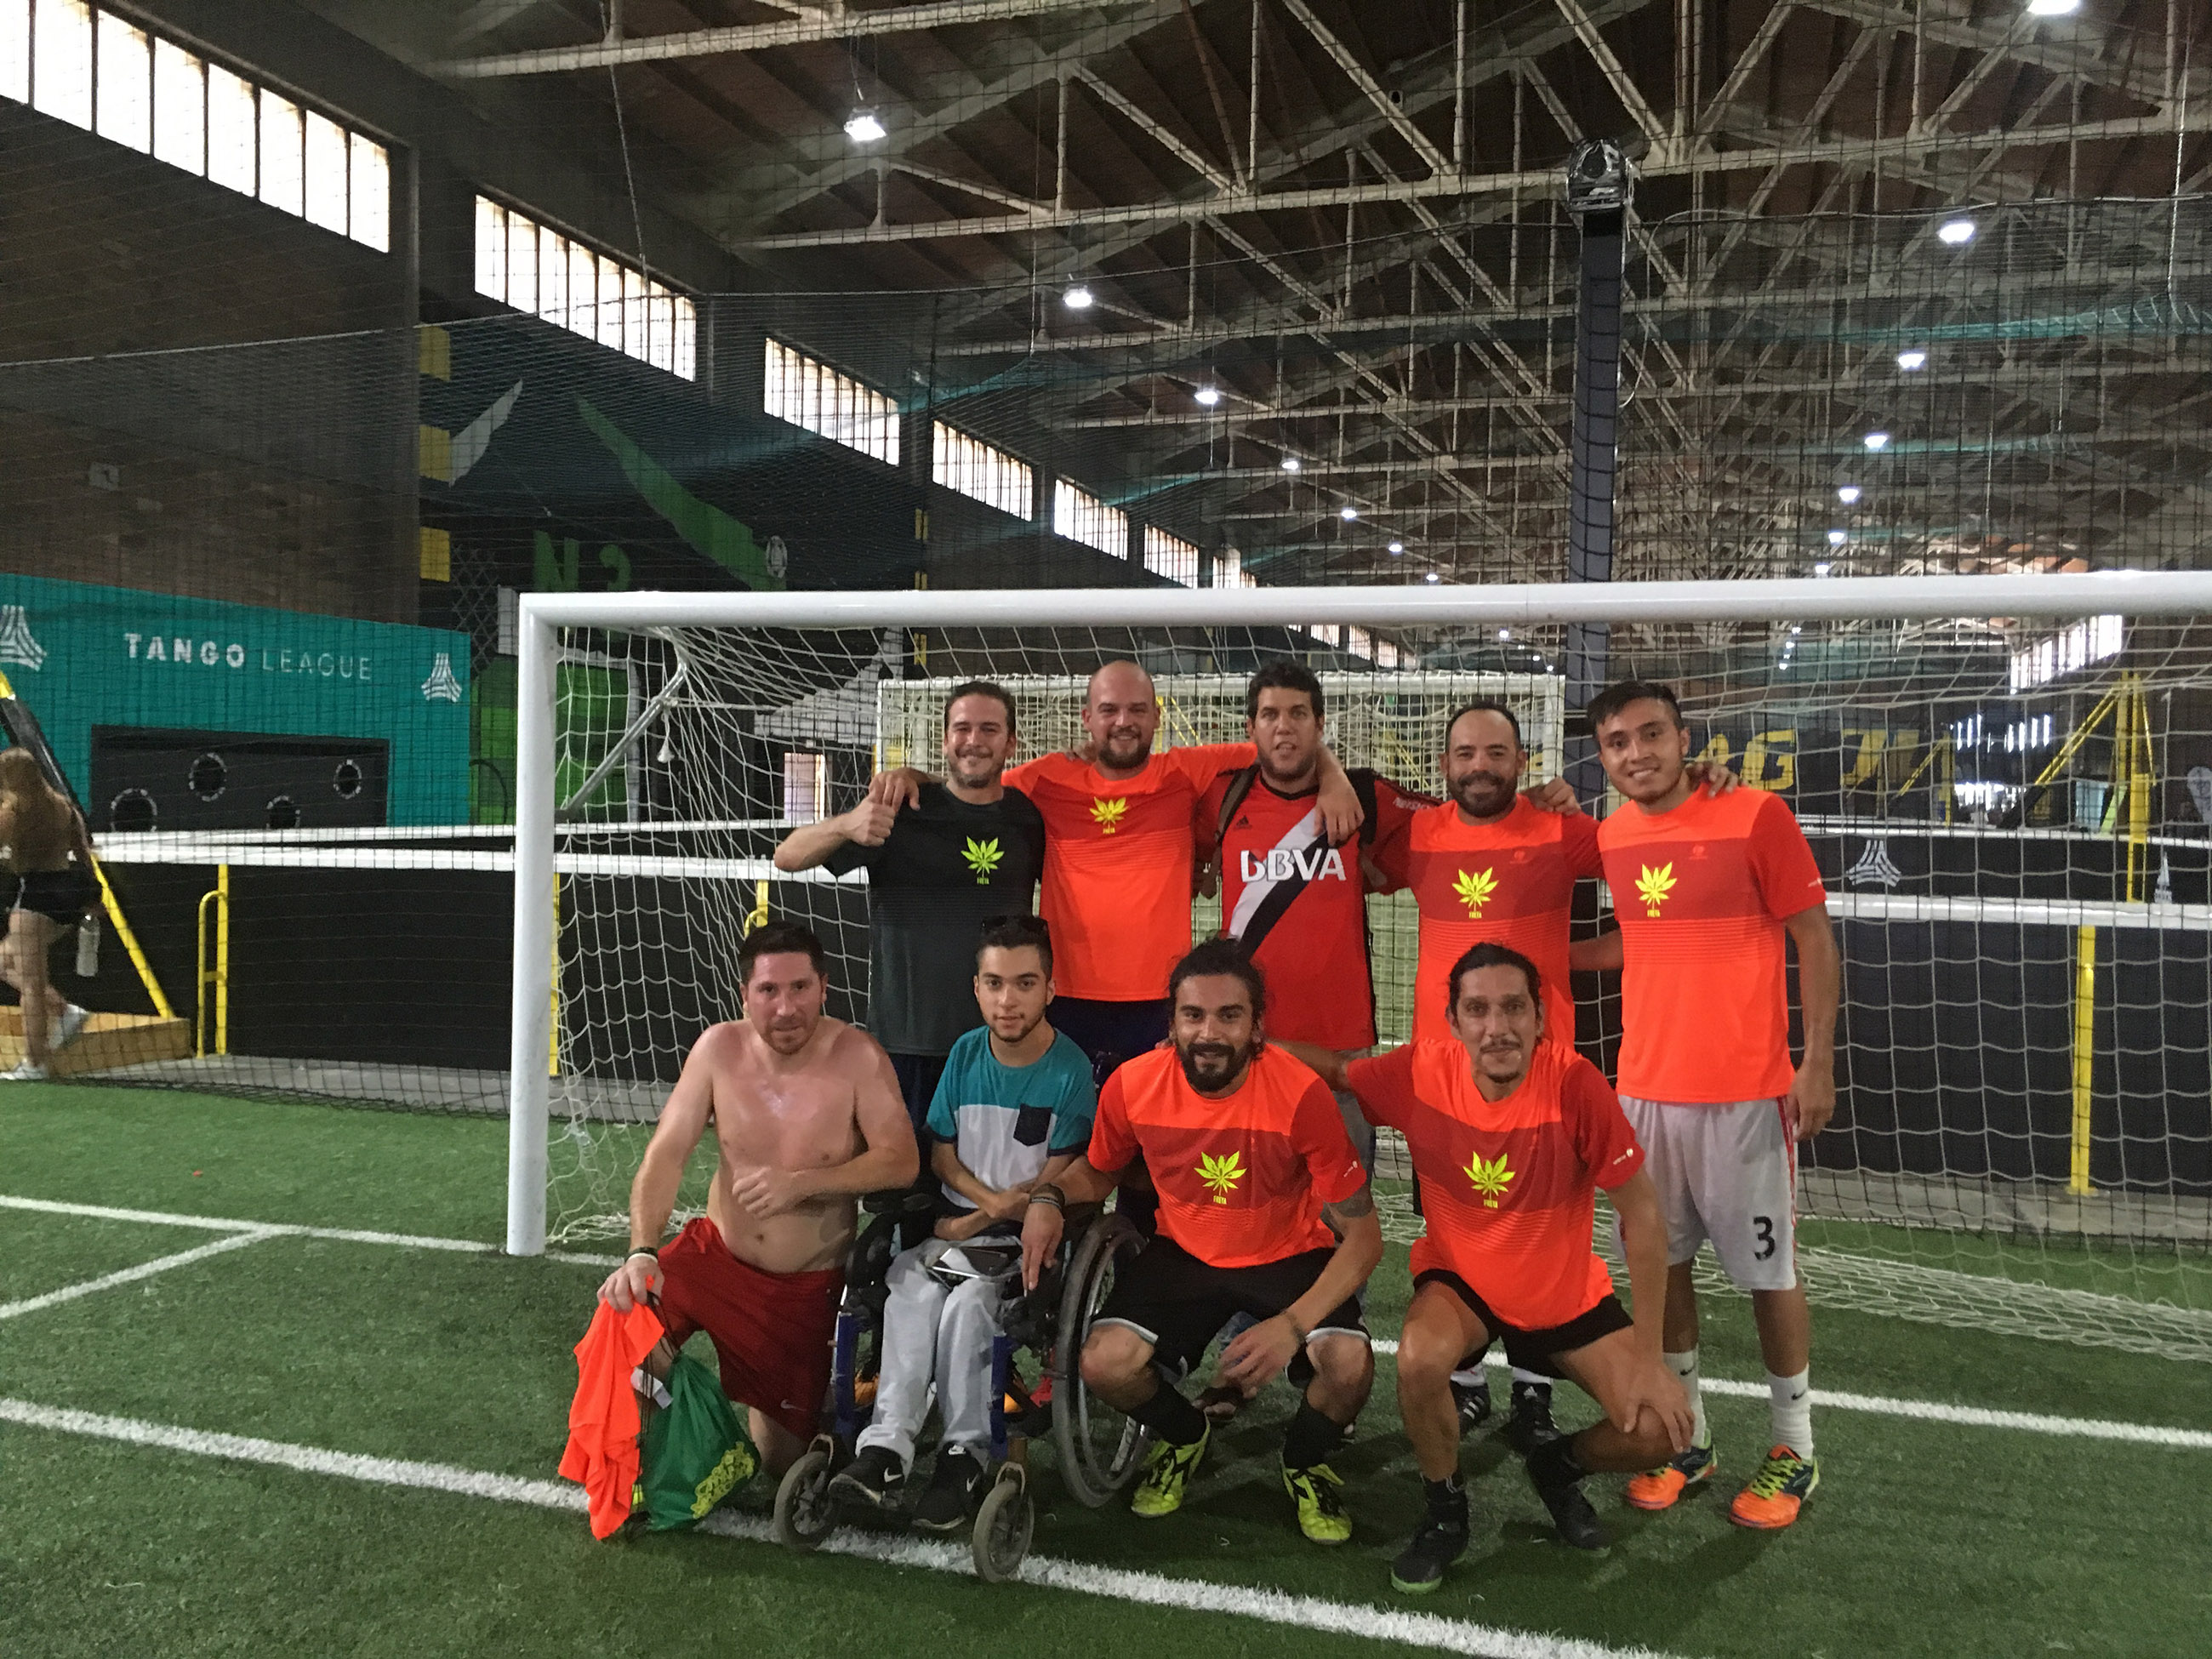 In the photograph is the football team of the Spanish Freya Cannabis Clubs. A total of seven men in orange football shirts are depicted, standing in front of the goal on an indoor football pitch.